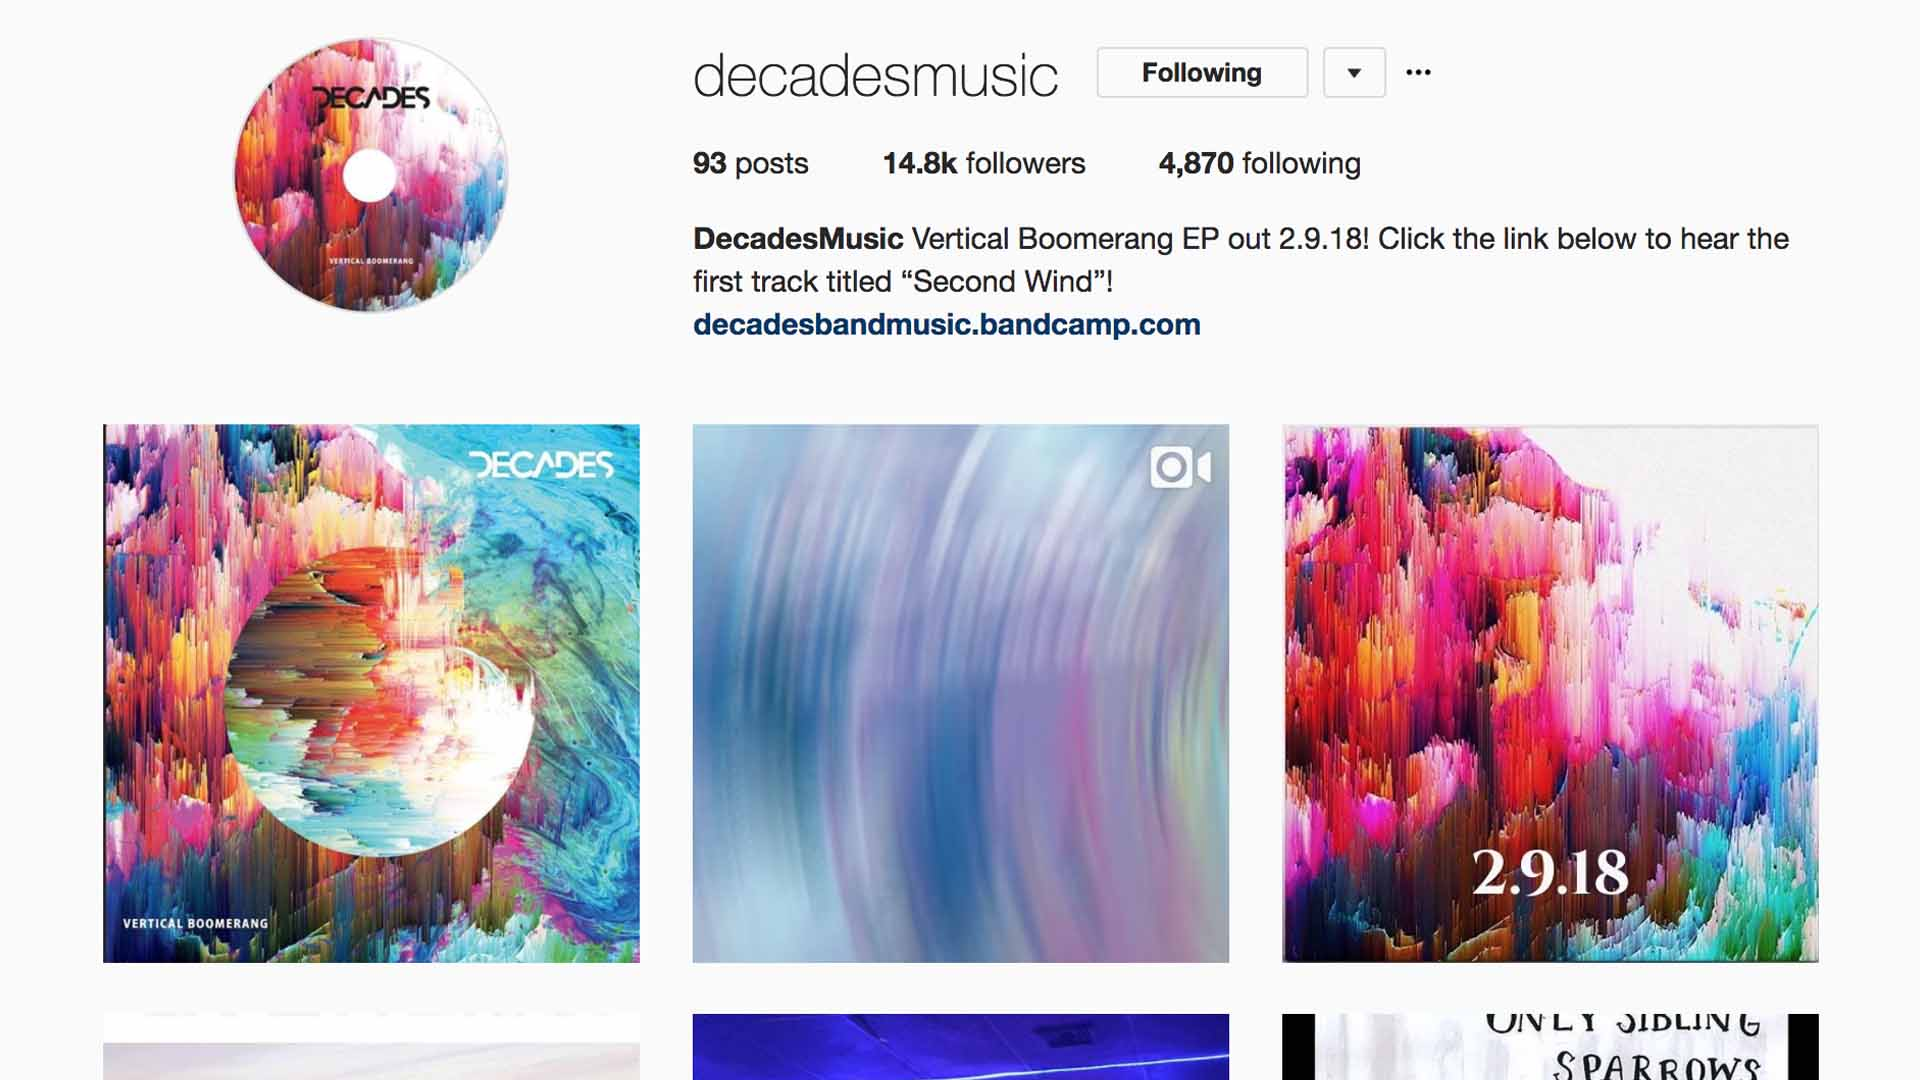 https://www.instagram.com/DecadesMusic/